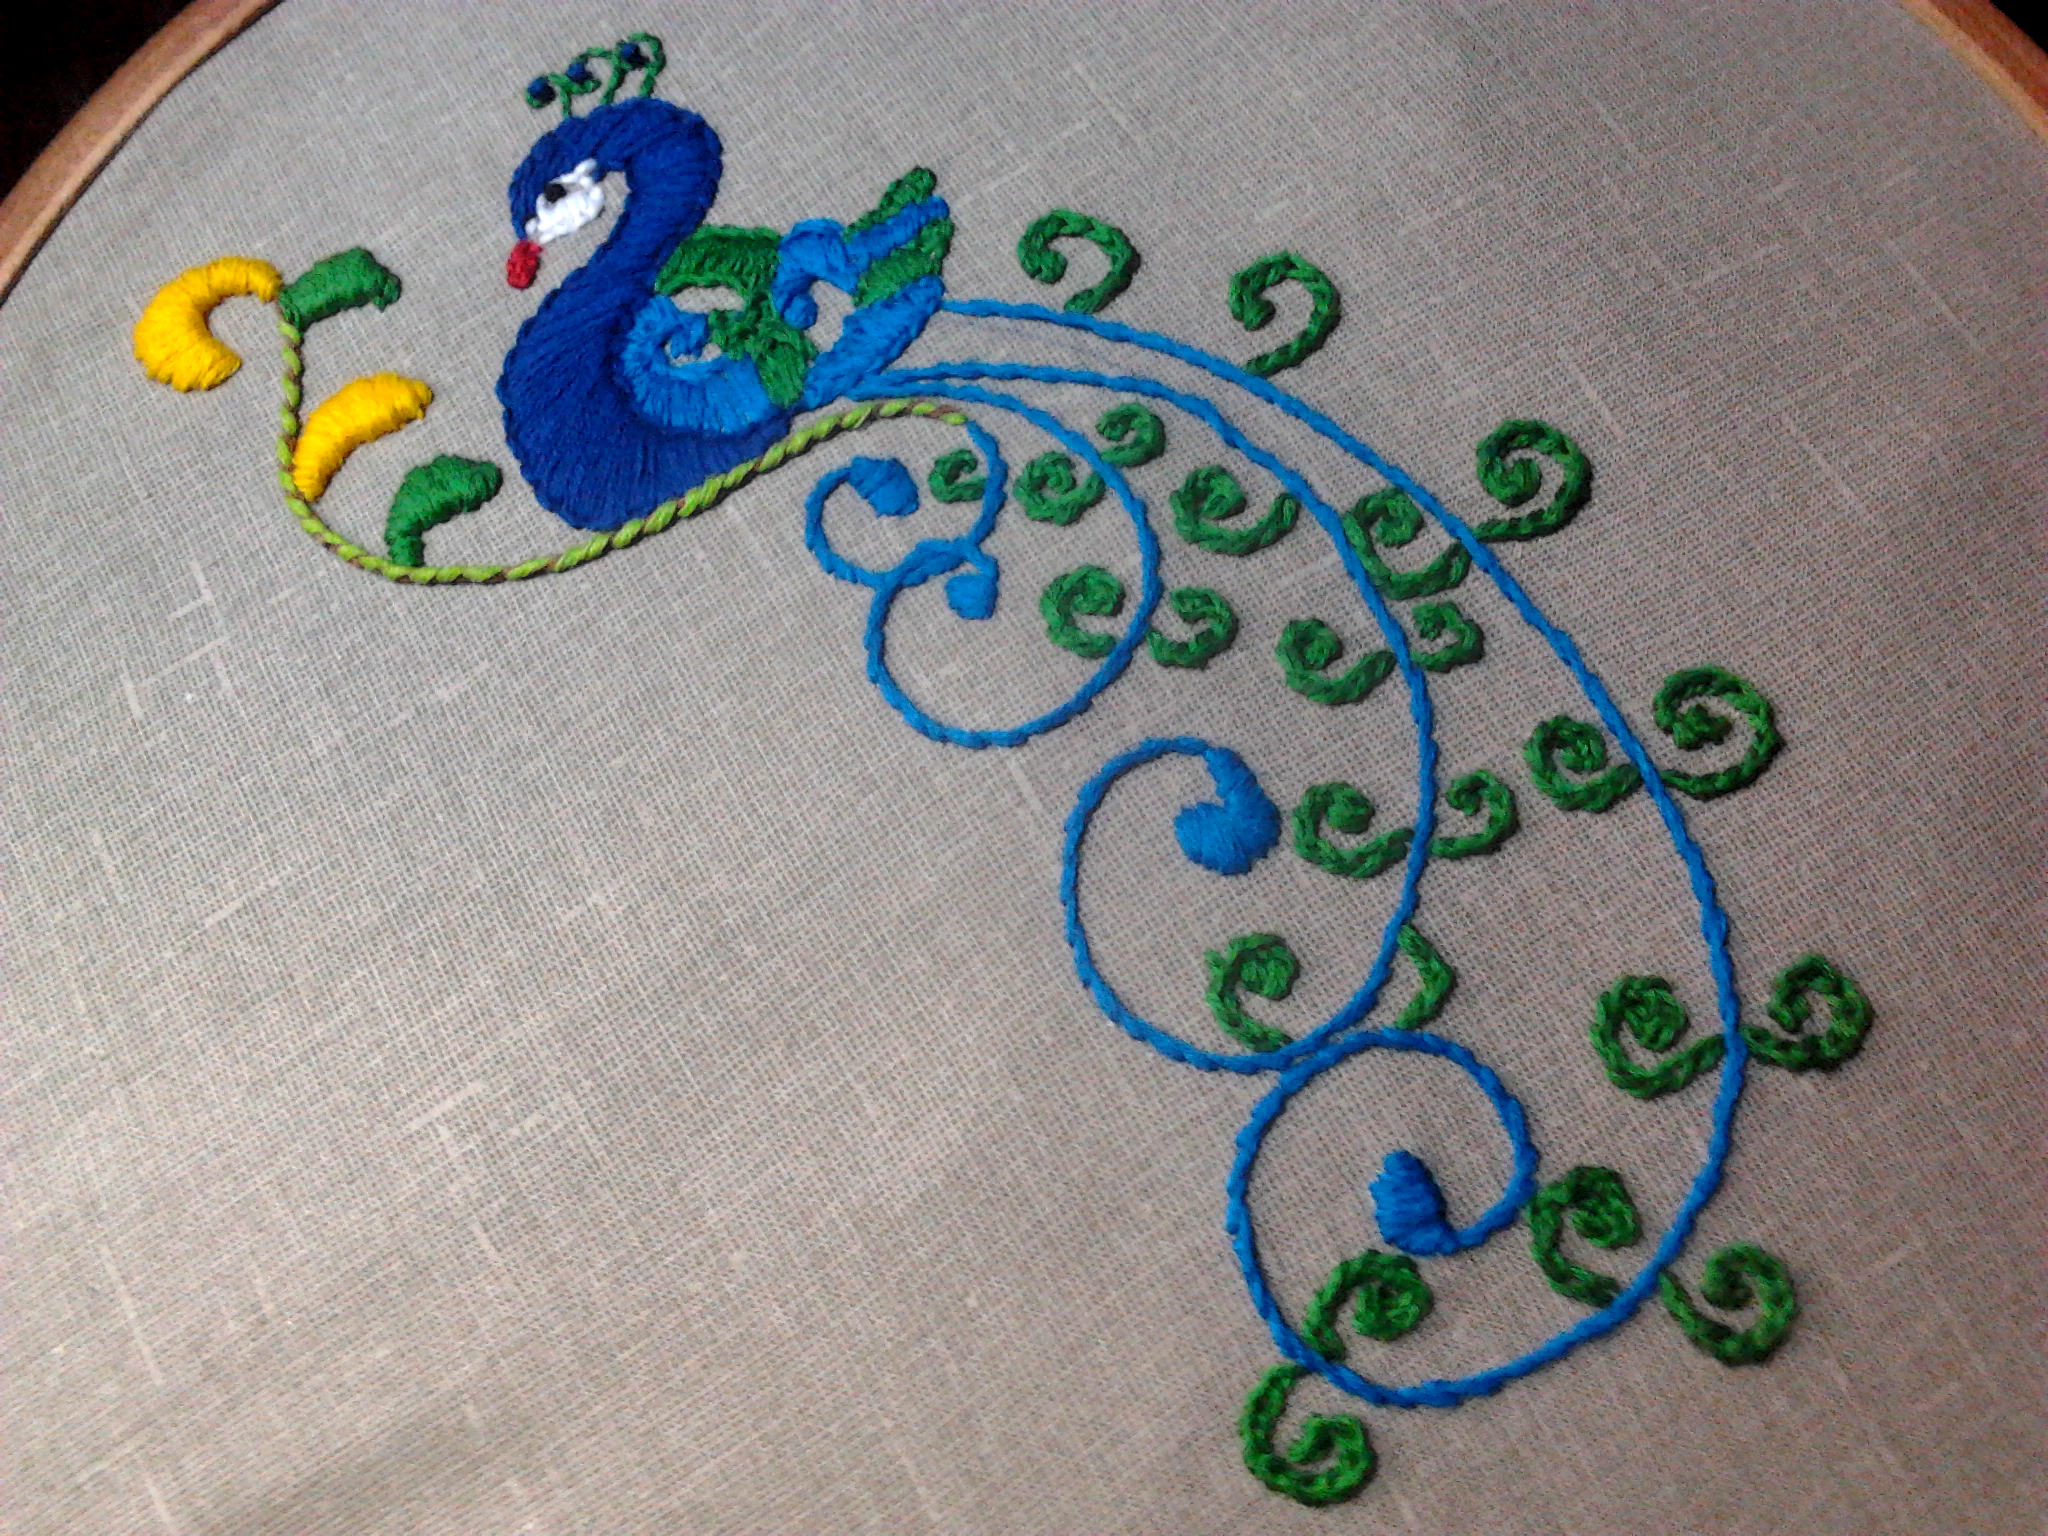 Back Stitched Chain Stitch Sarahs Hand Embroidery Tutorials